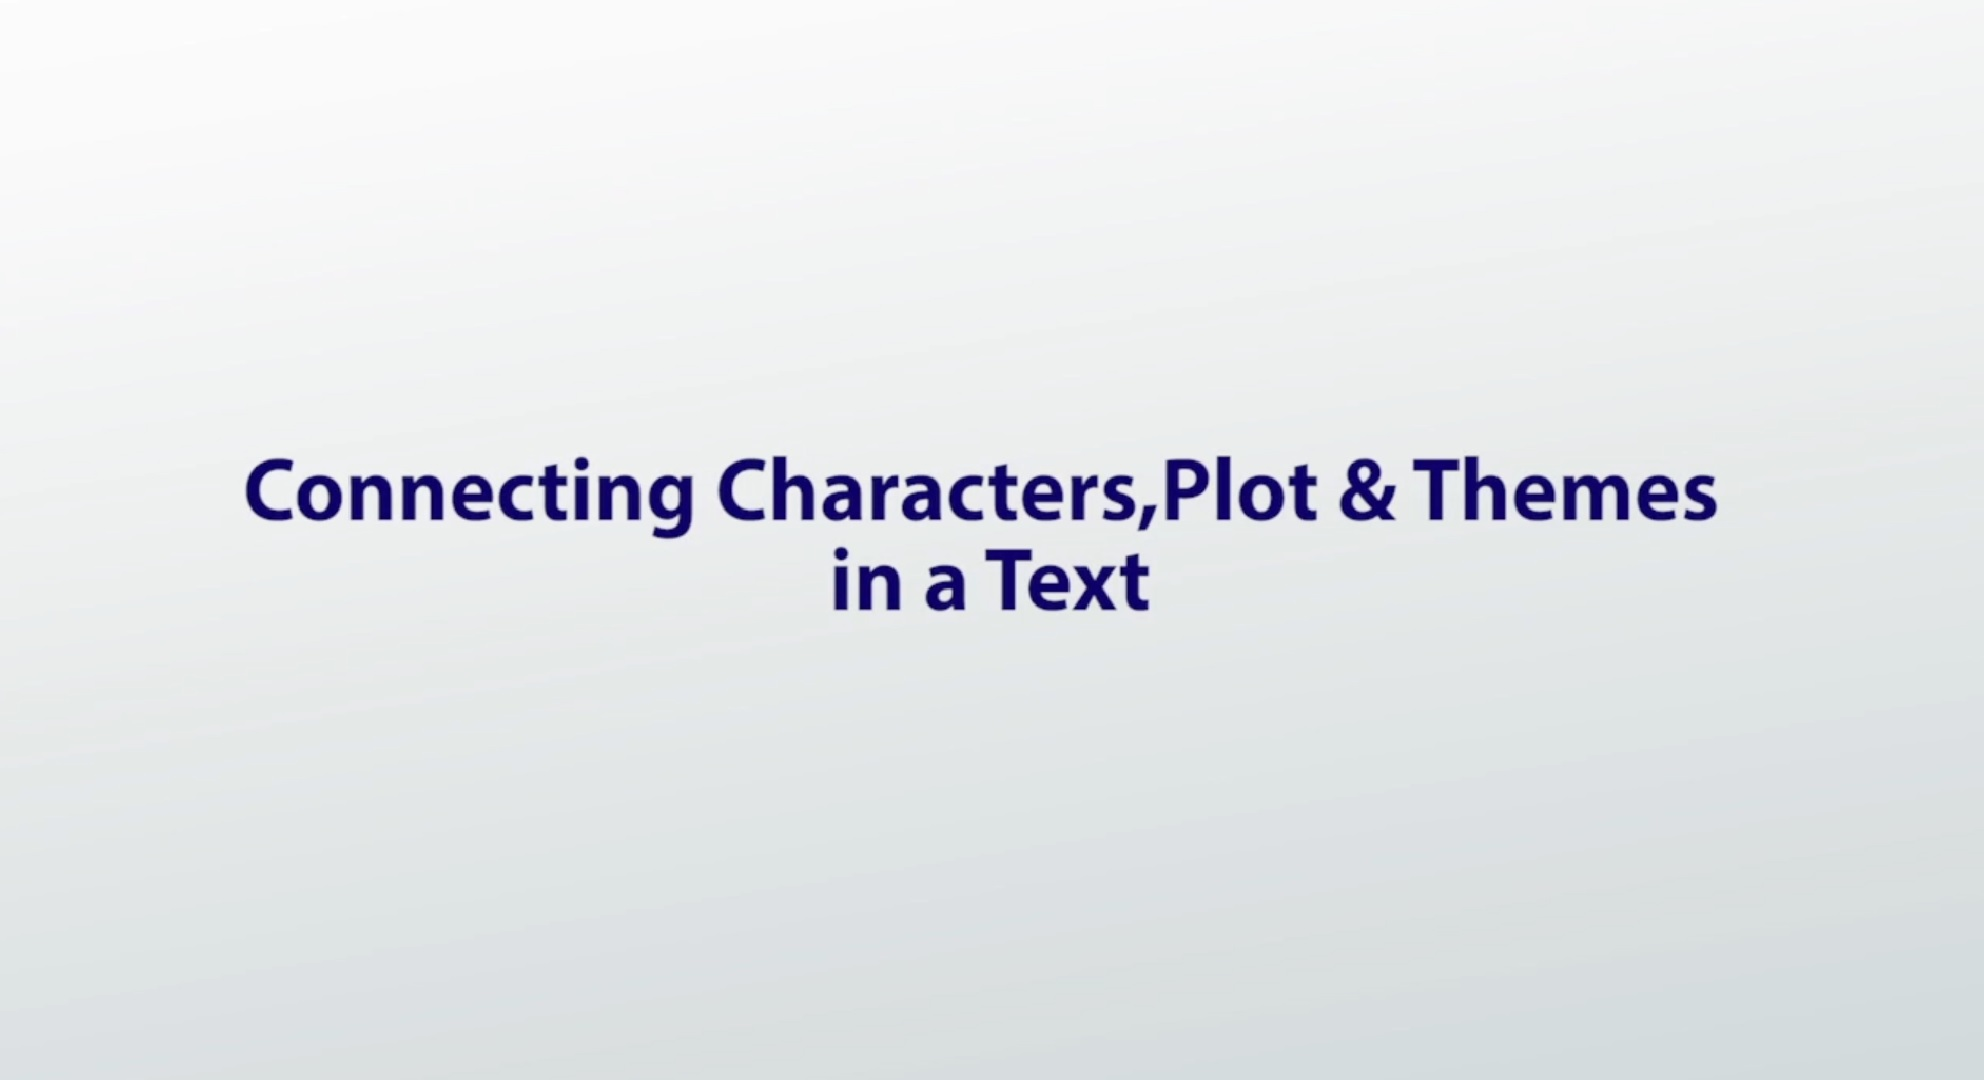 setting in literature definition importance examples video connecting characters plot themes in a text